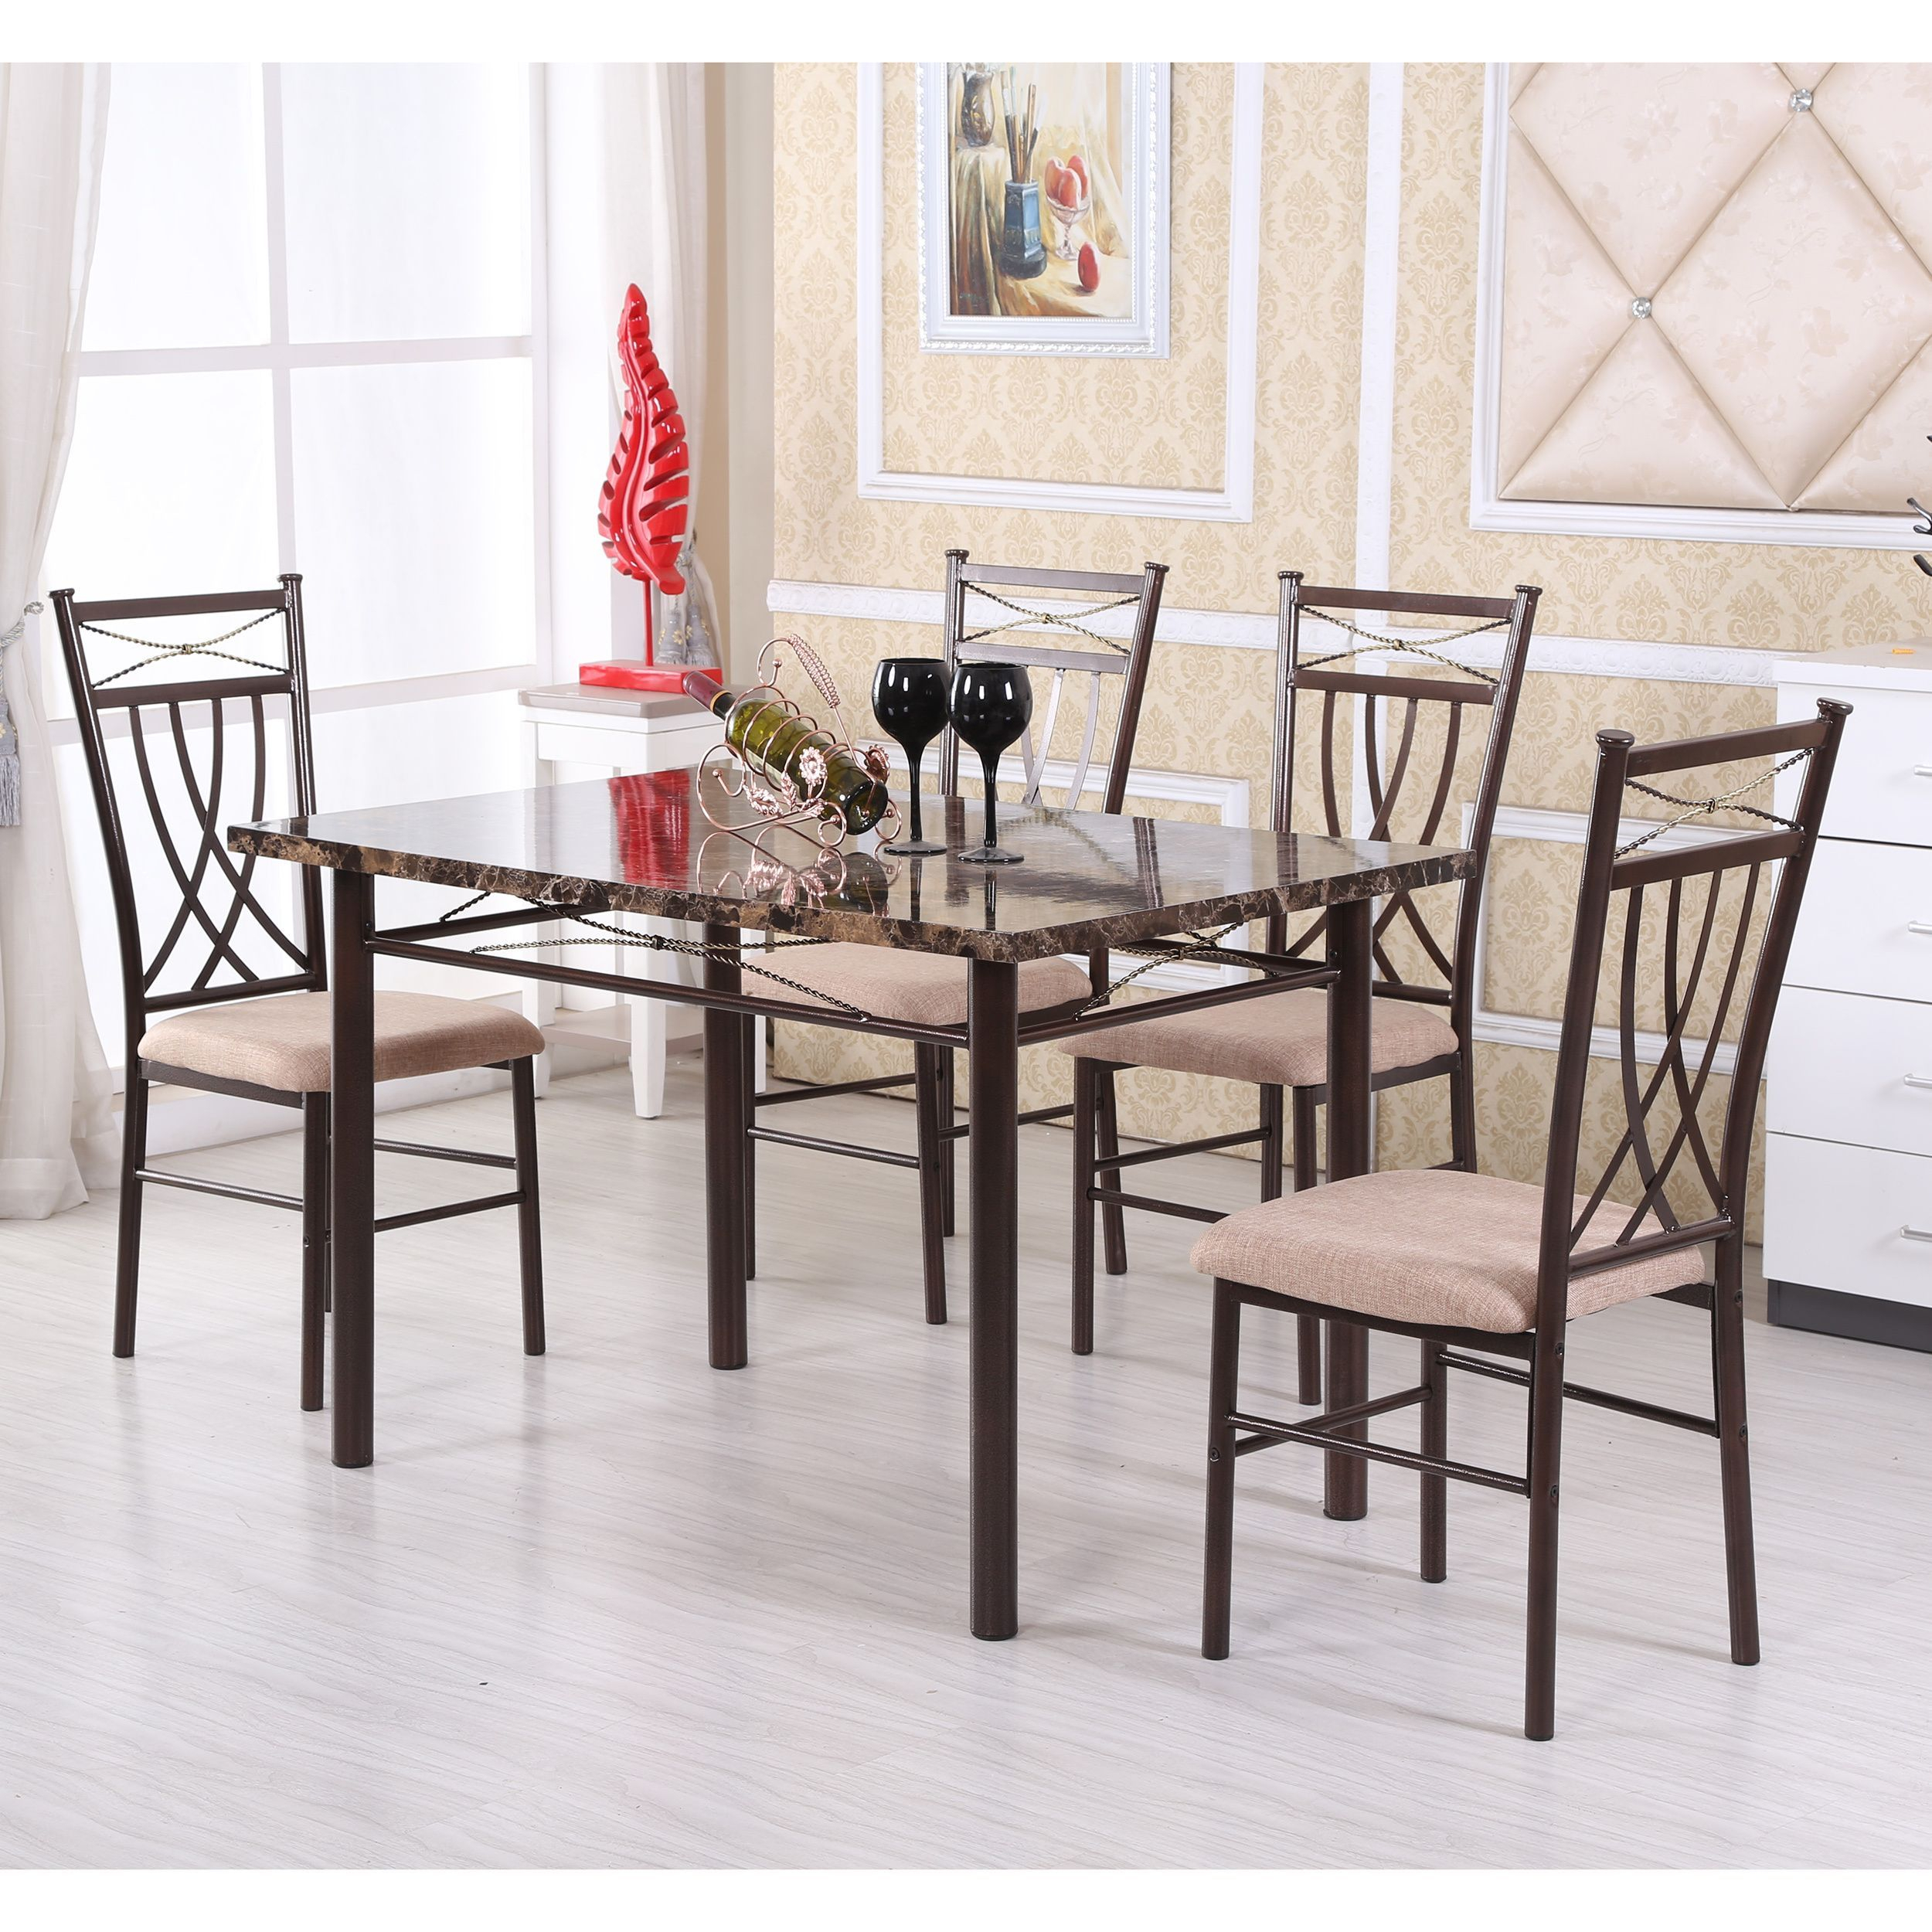 Update Your Dining Room With This Classic Five Piece Dining Set Pertaining To 2017 Kieffer 5 Piece Dining Sets (#15 of 20)